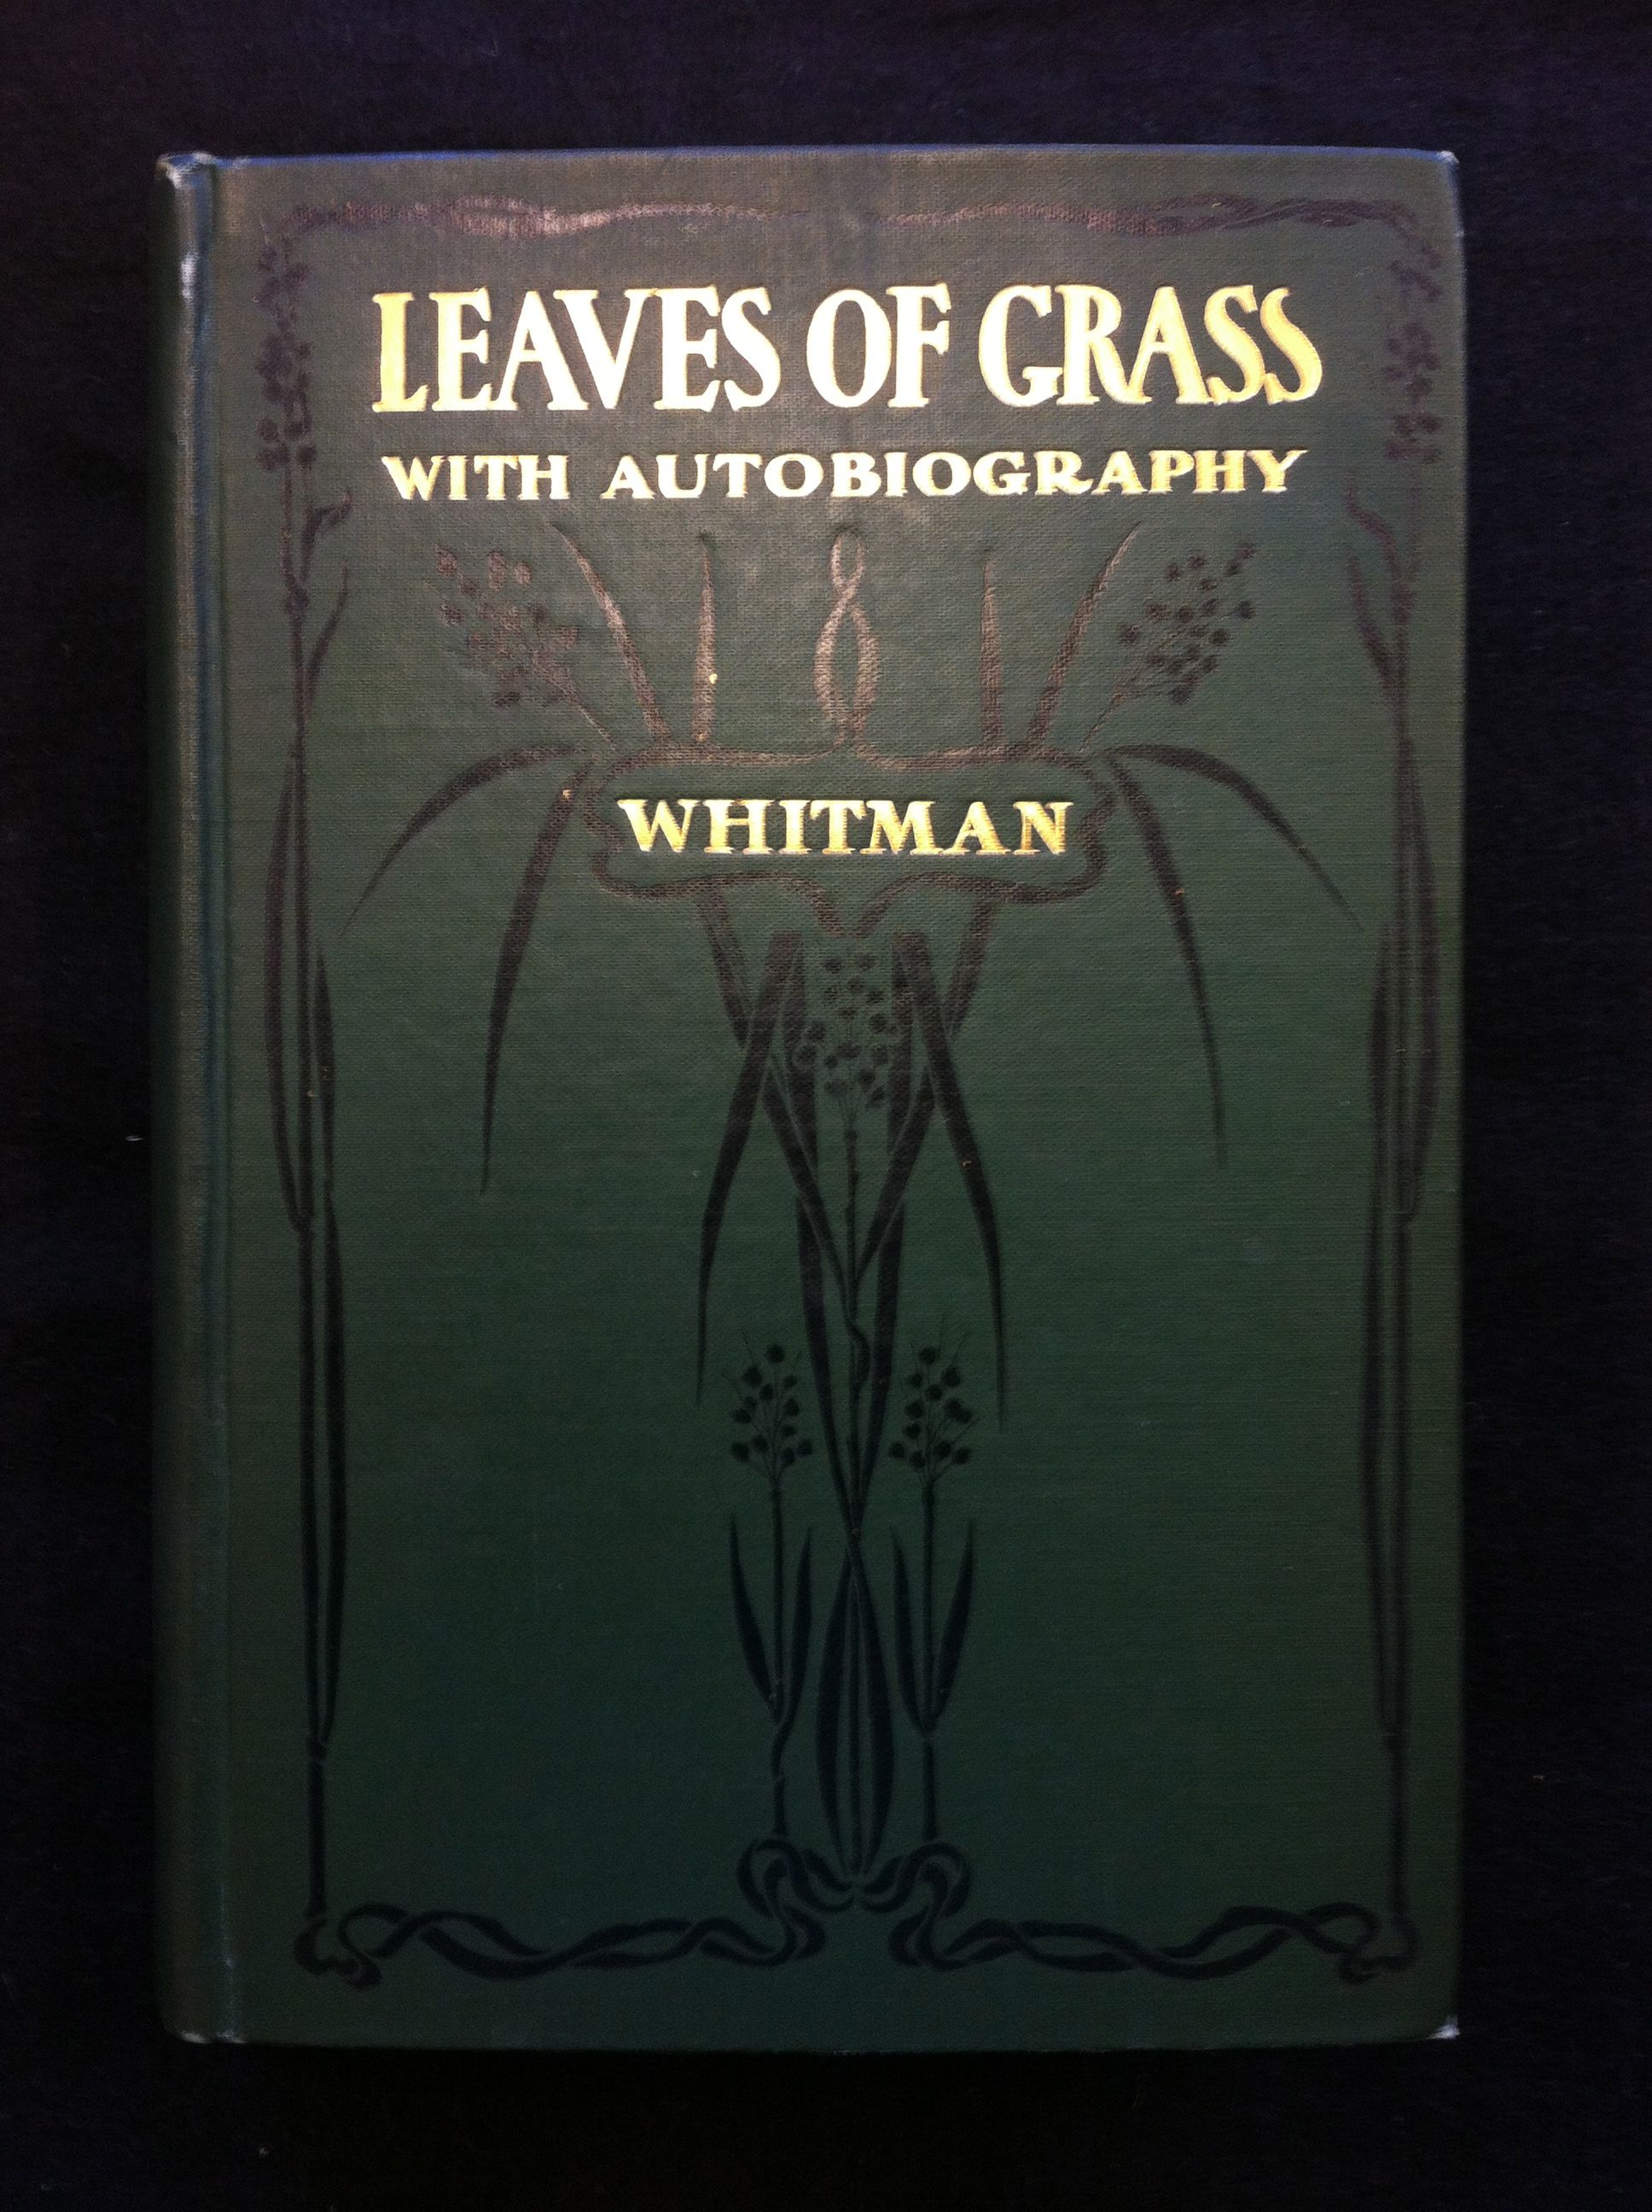 a biography of the poet walt whitman Walter walt whitman (may 31, 1819 – march 26, 1892) was an american poet, essayist and journalist he was an important american poet of the 19th century.